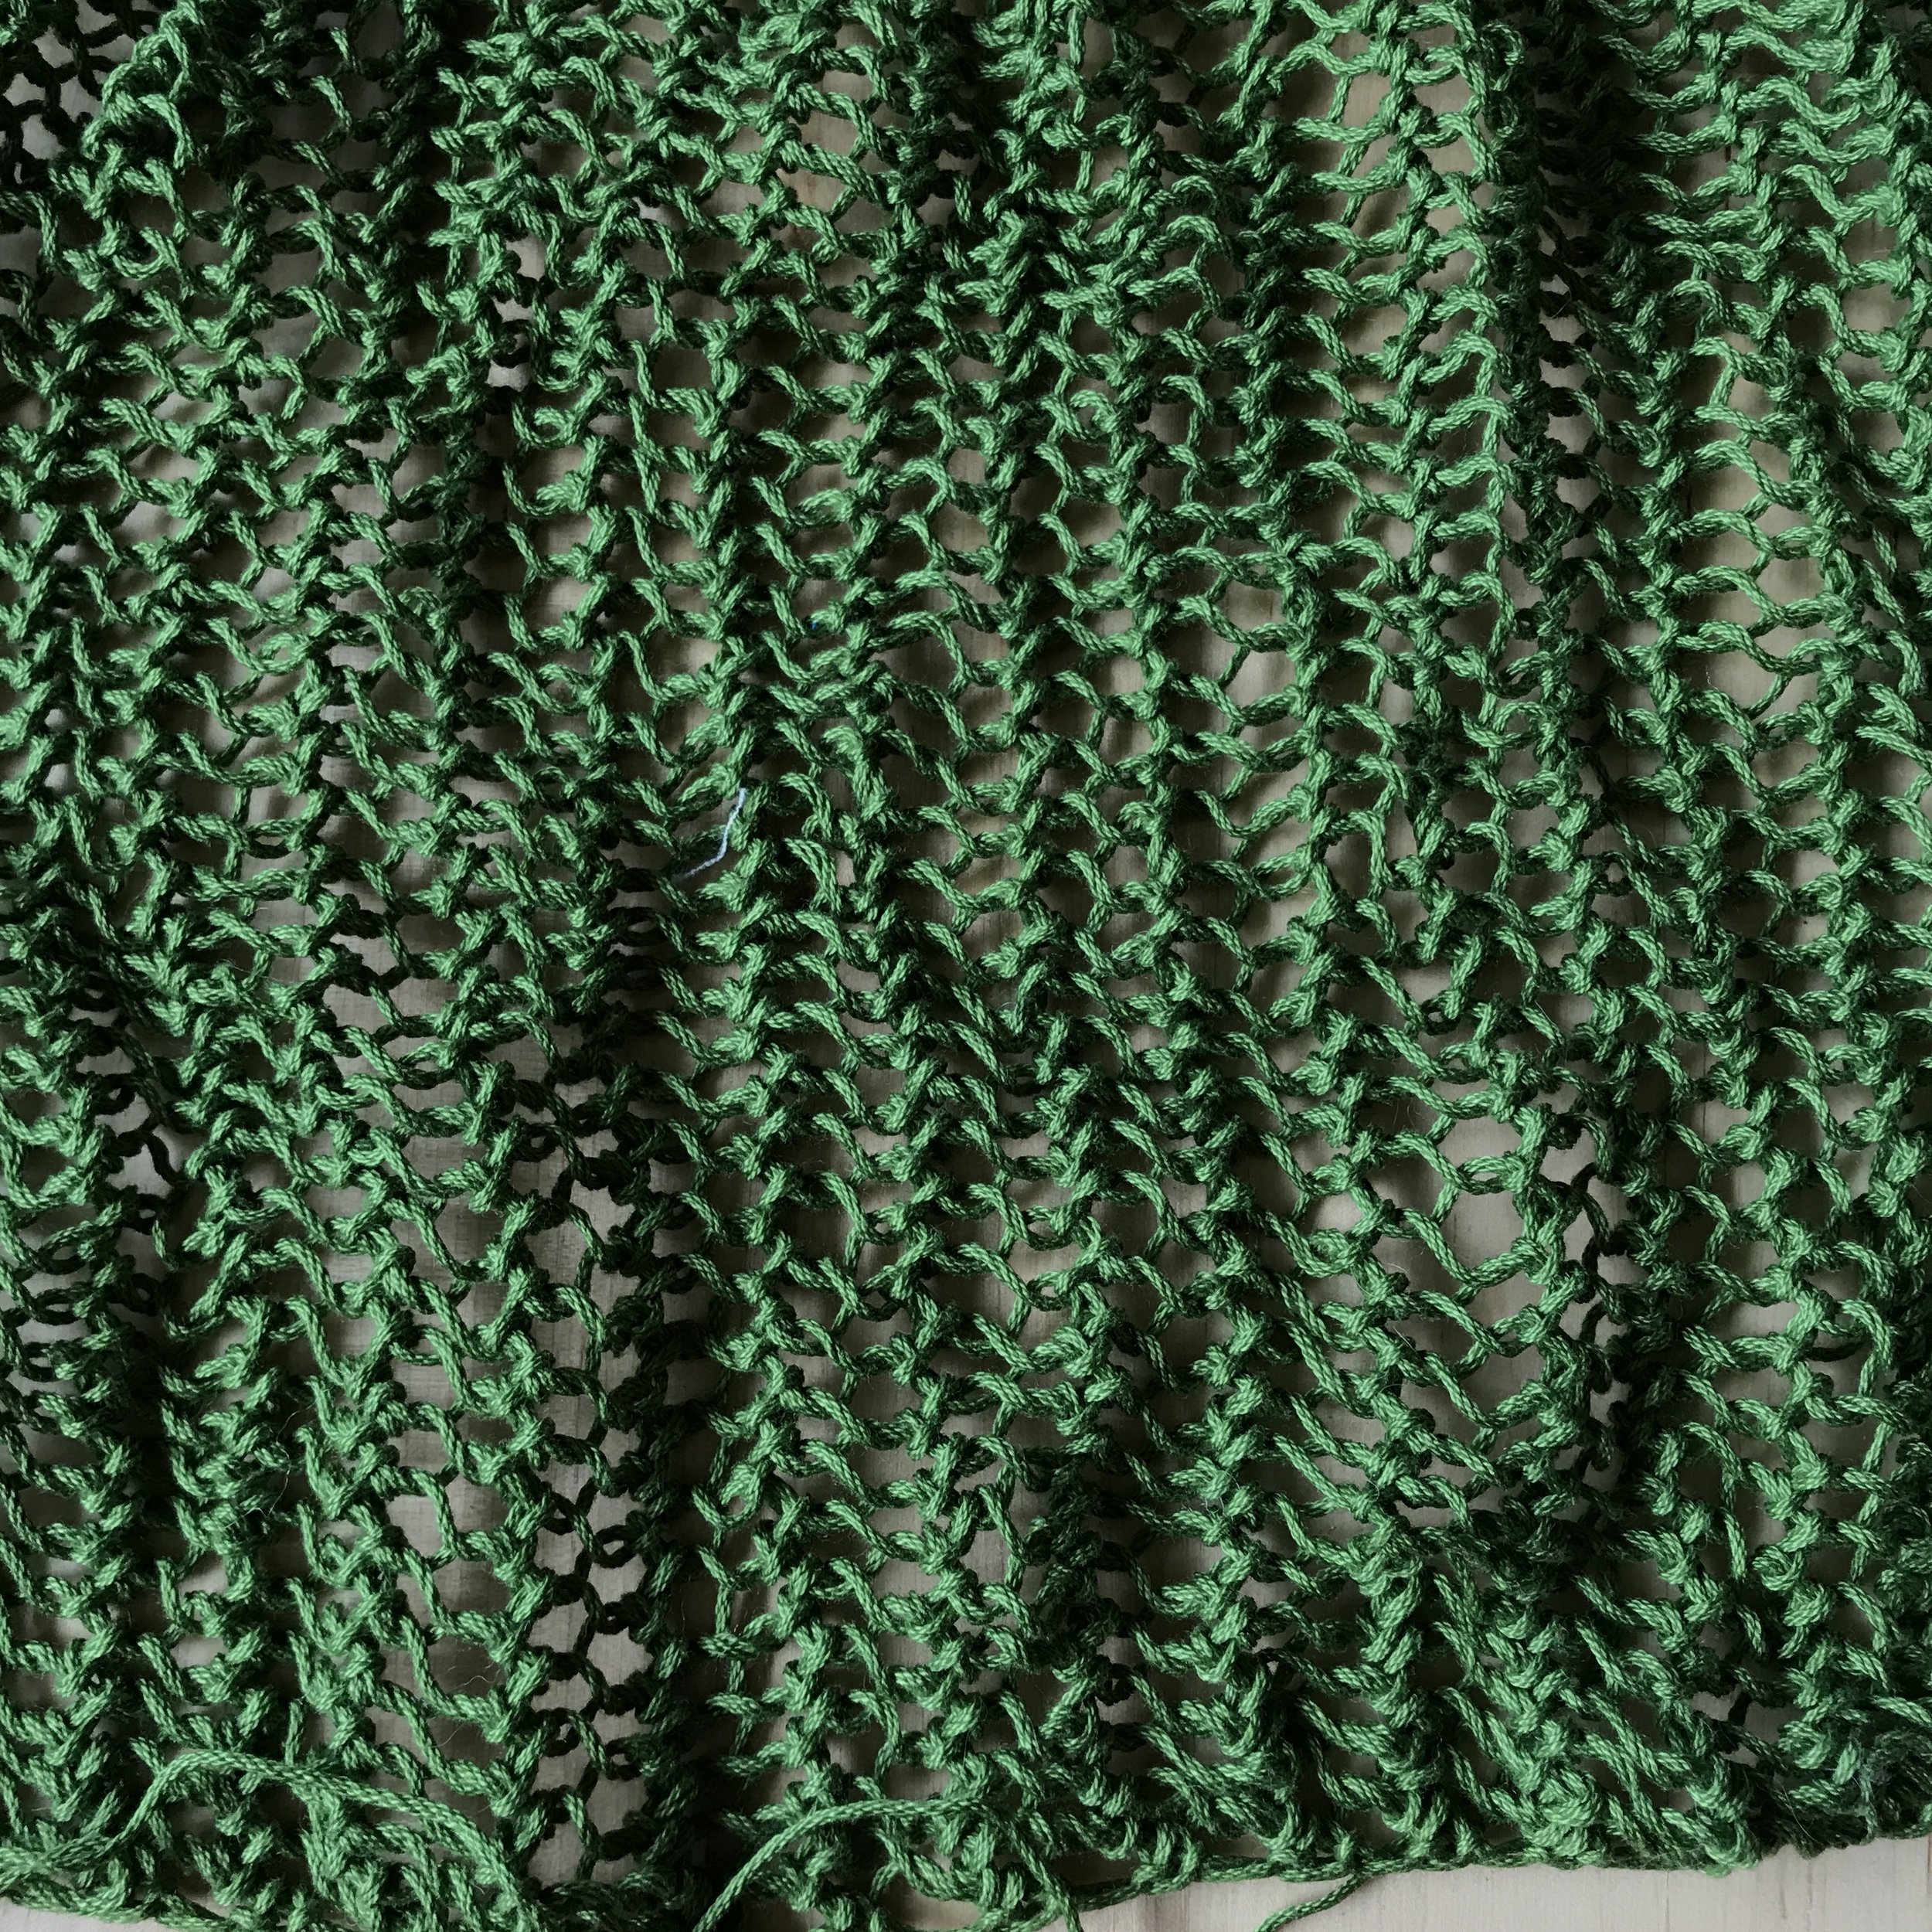 Close up of unblocked fishnet knitted fabric.